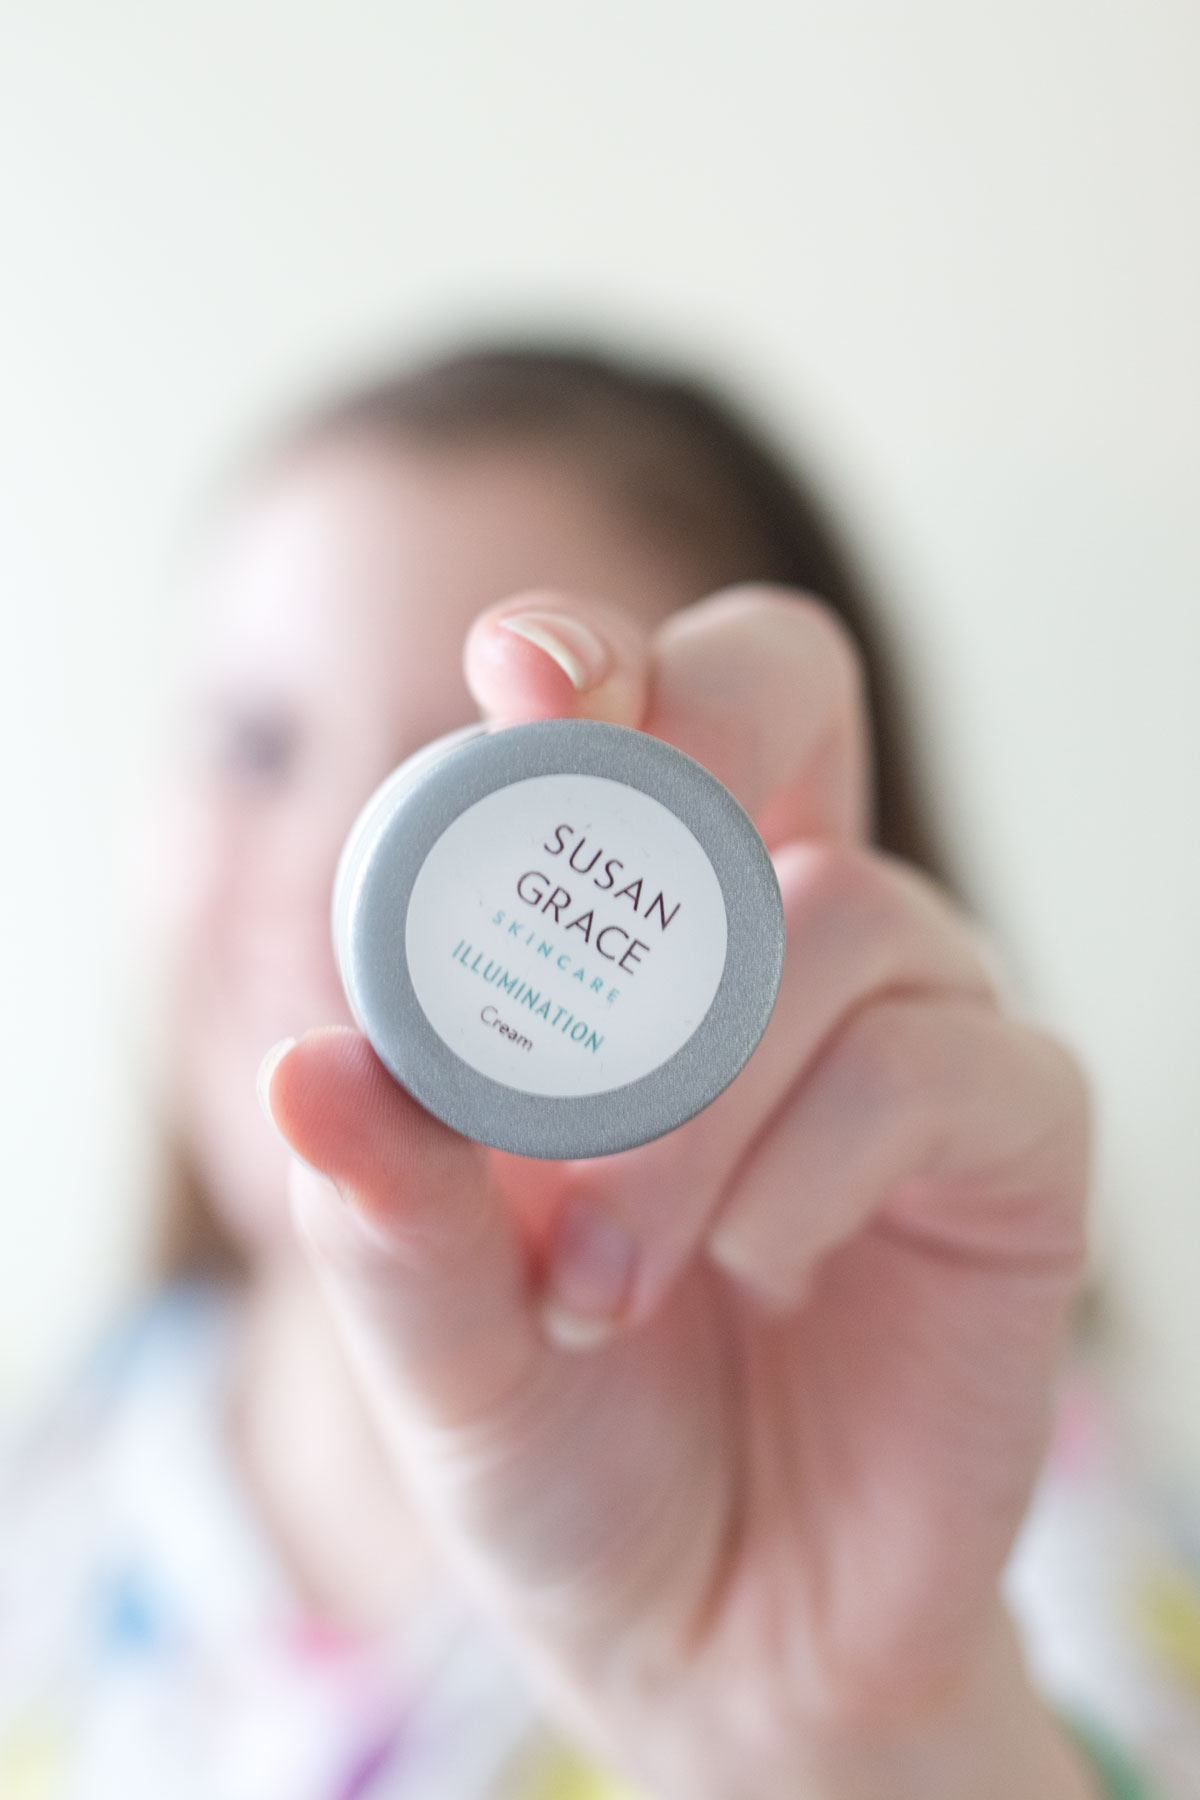 Susan Grace Skincare Illumination Cream Review // Hello Rigby Seattle Beauty & Skincare Blog